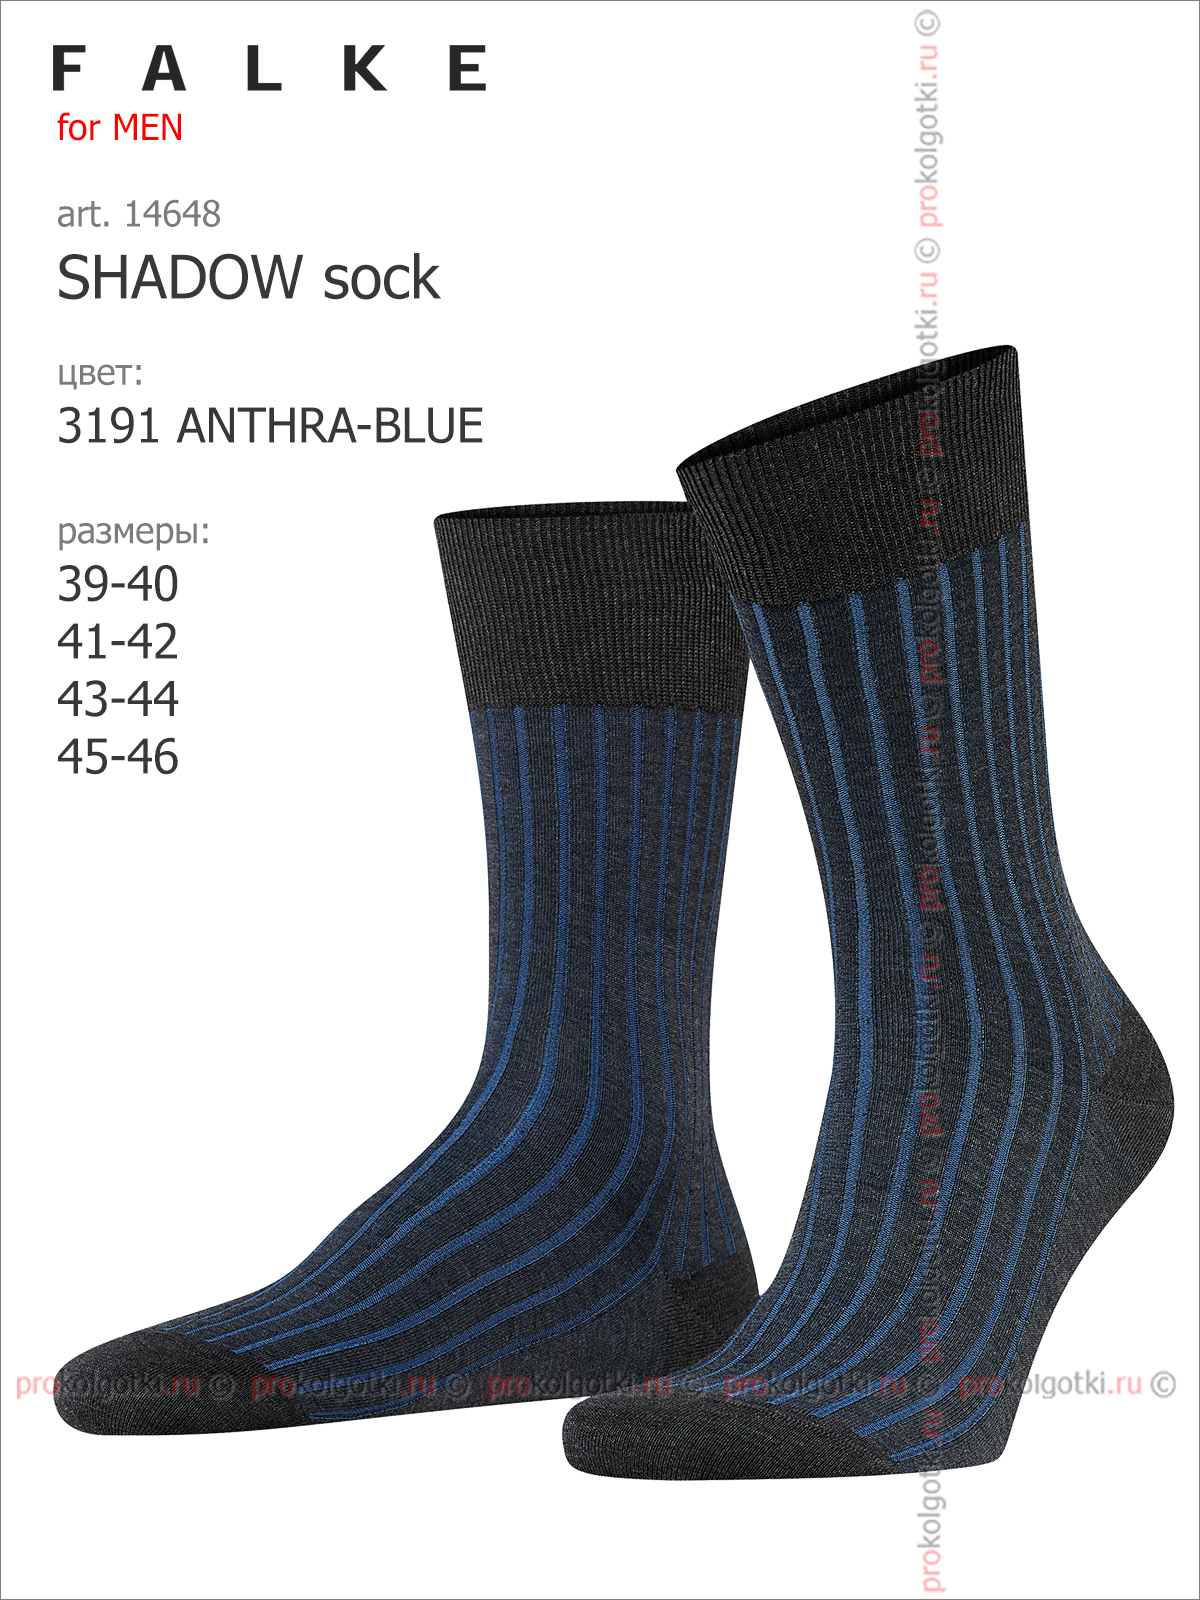 Носки Falke Art. 14648 Shadow Sock - фото 2